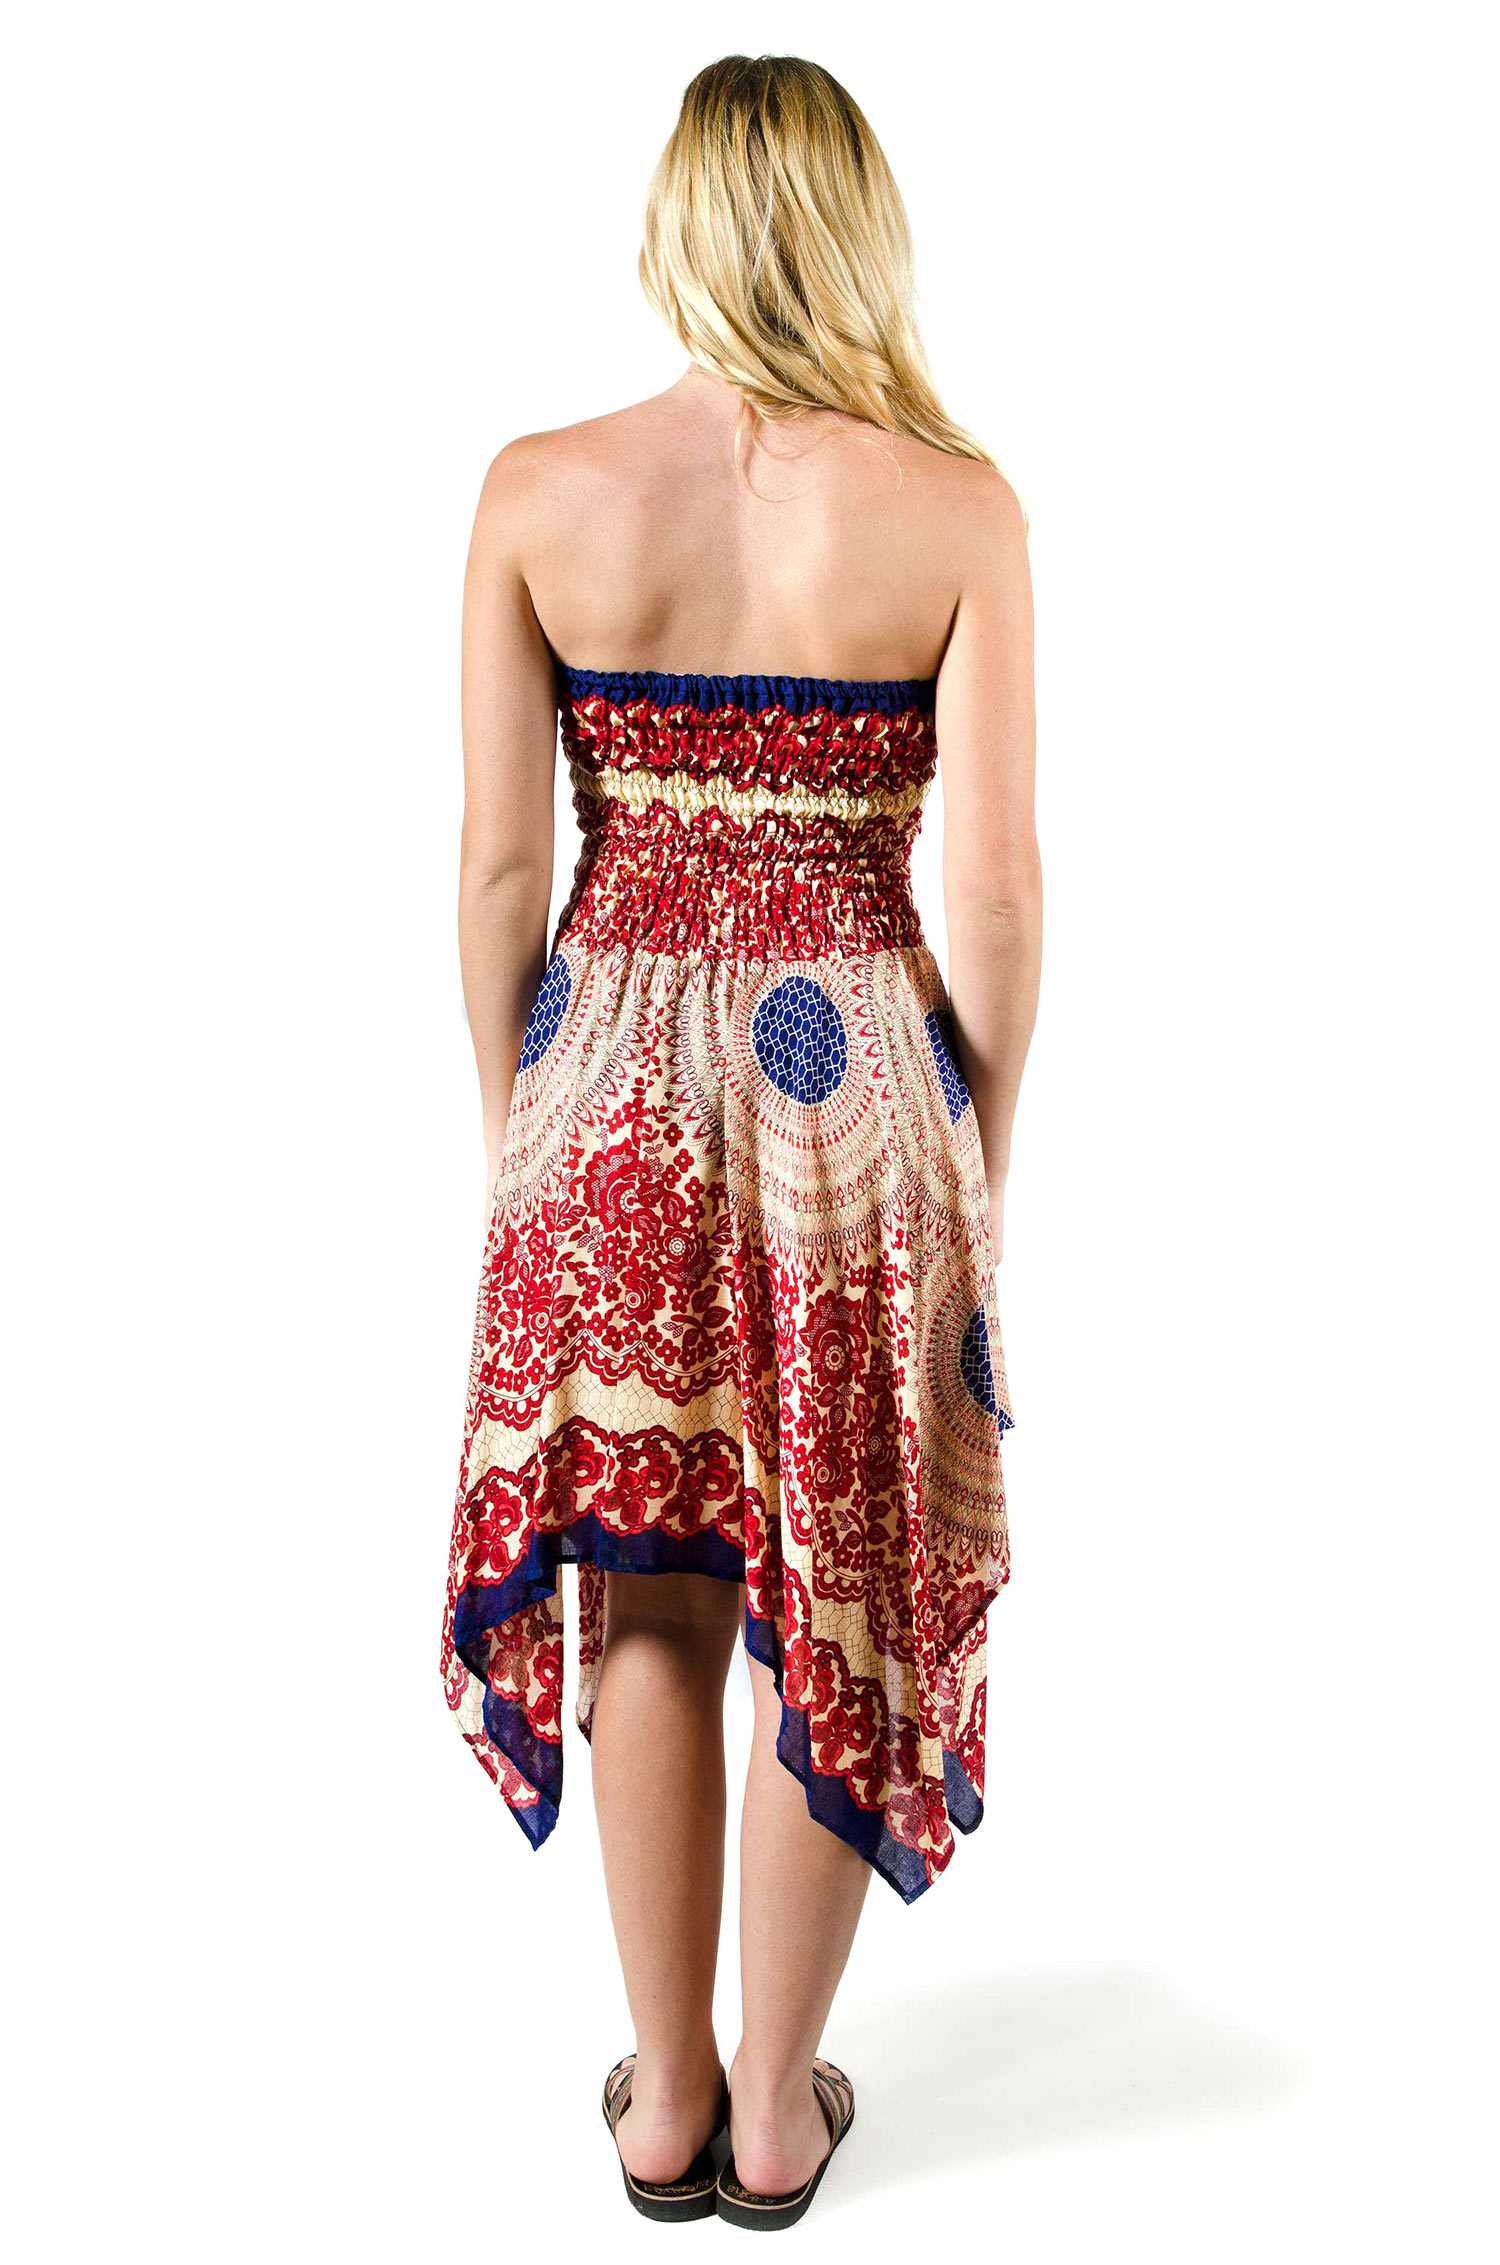 Convertible Print Fairy Dress / Skirt - Red - 3135R